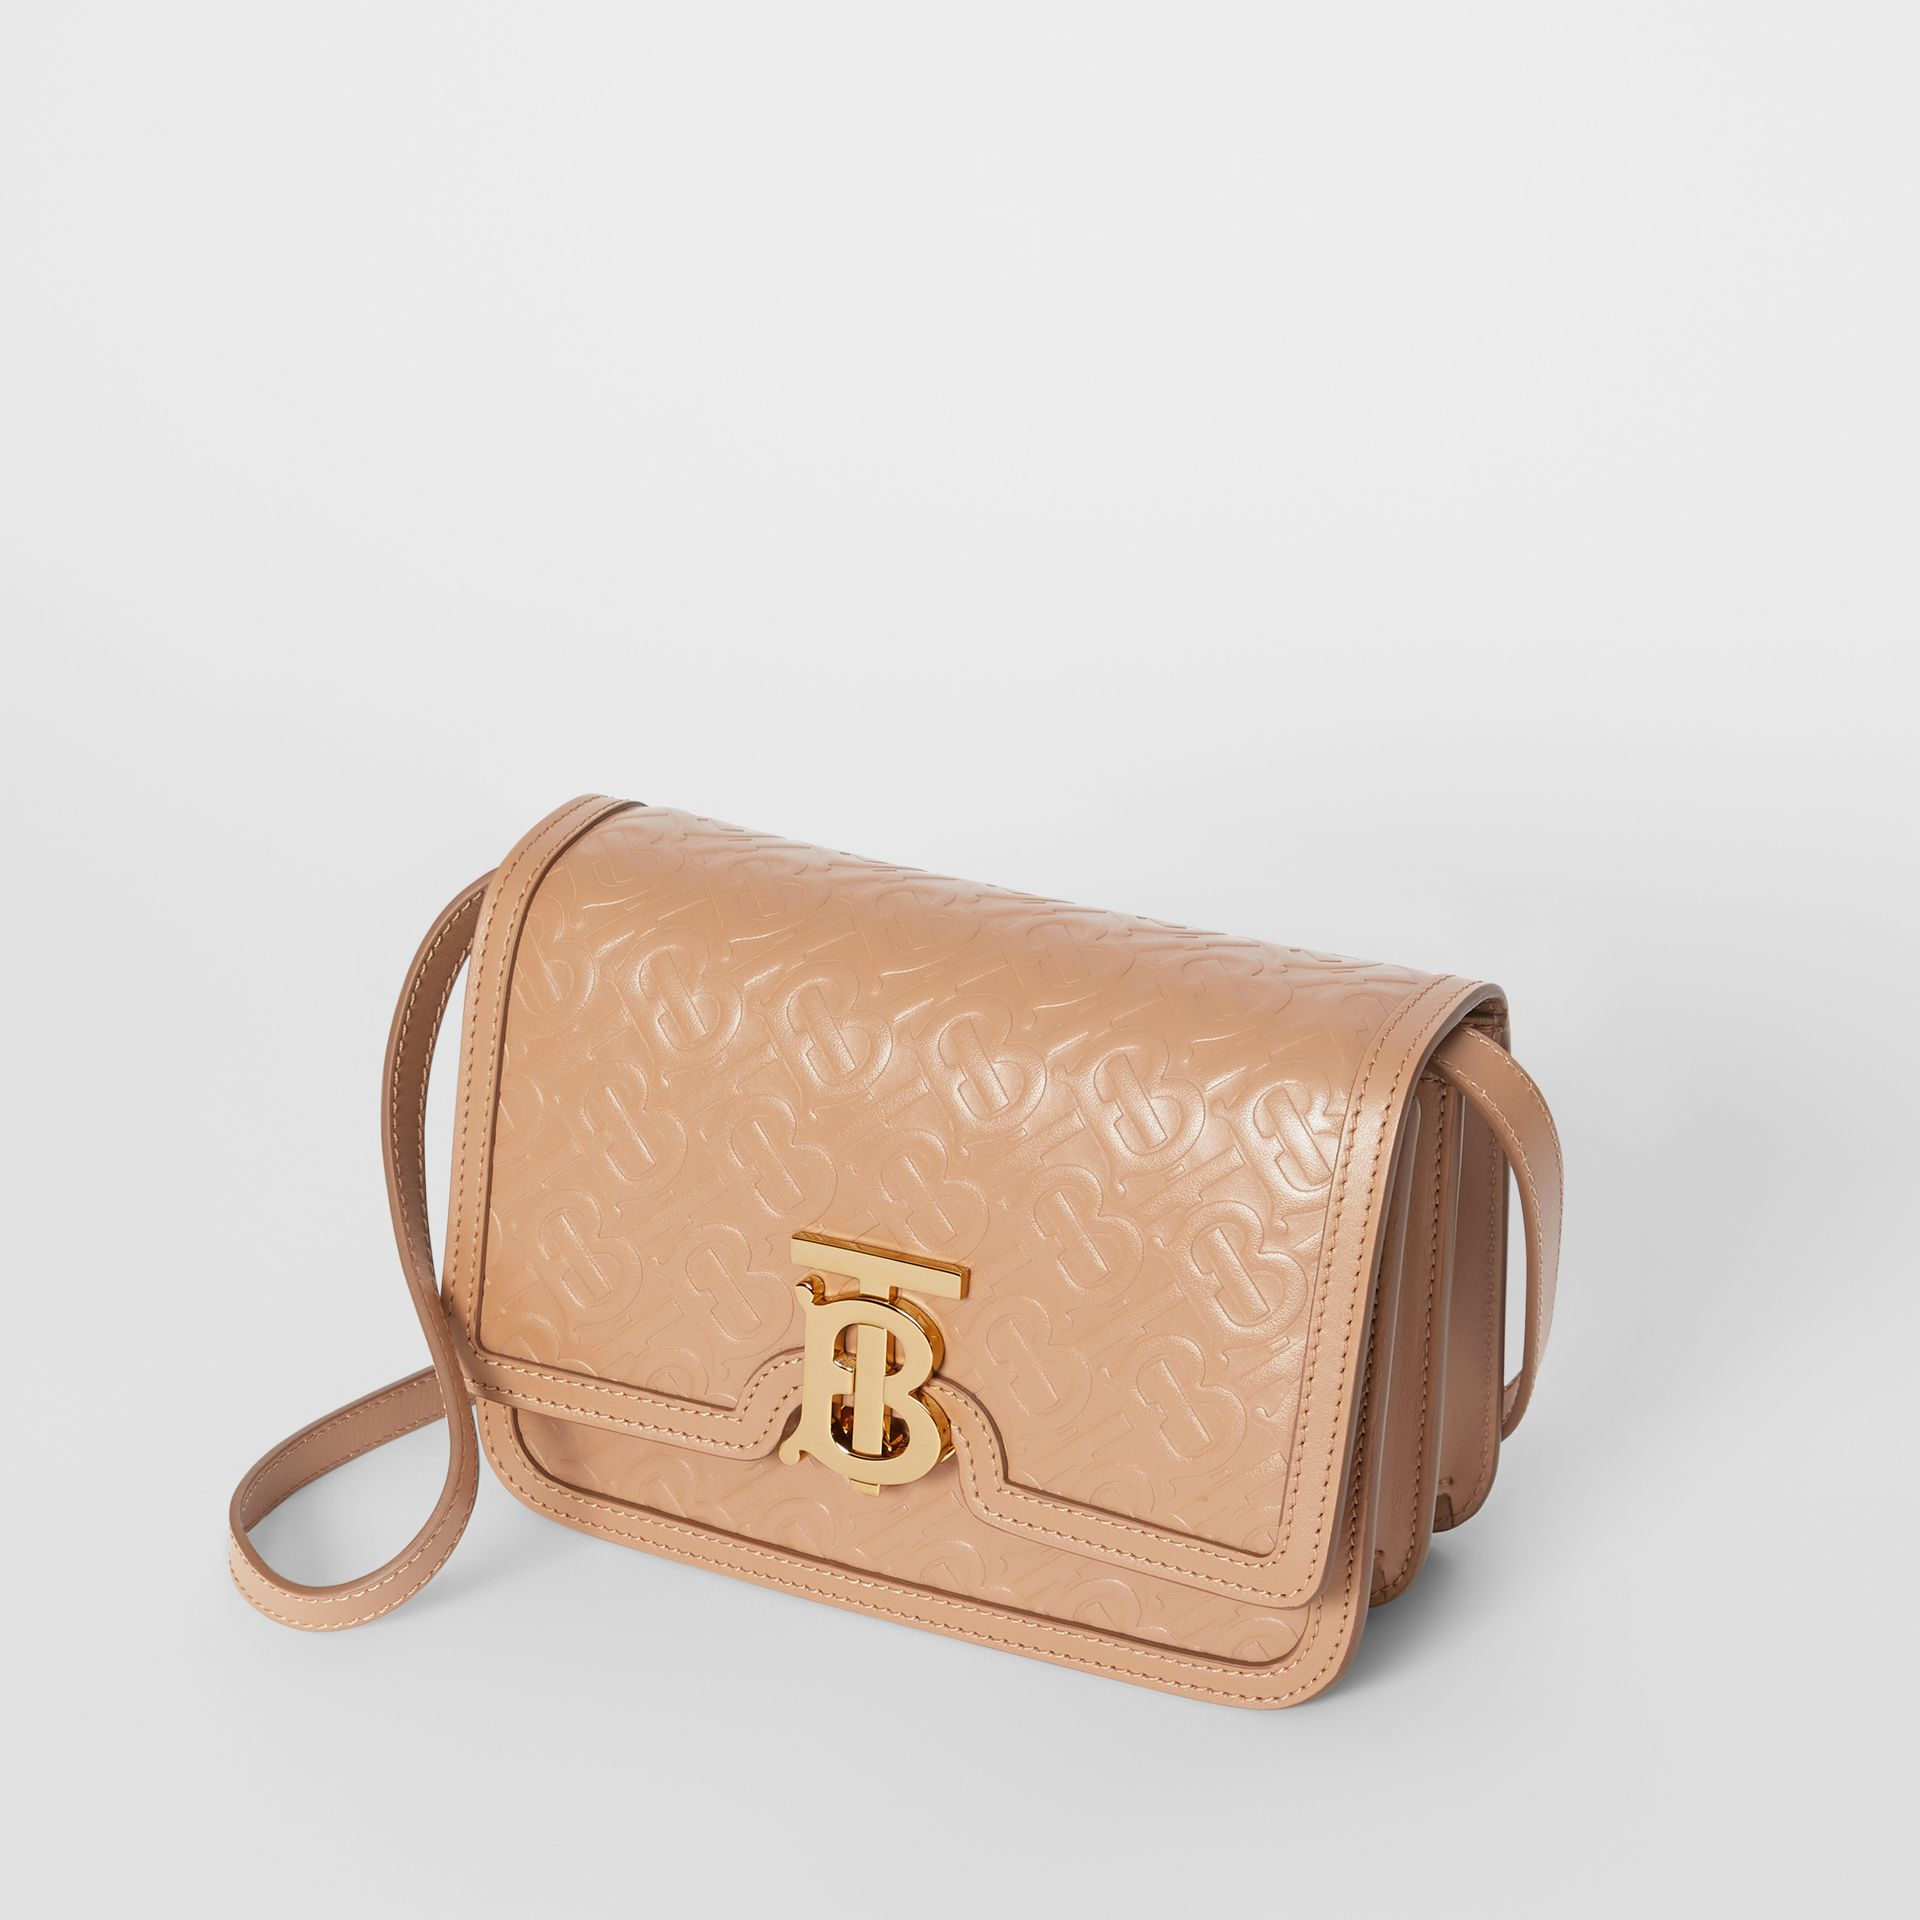 Small Monogram Leather TB Bag in Light Camel - Women | Burberry United Kingdom - gallery image 3